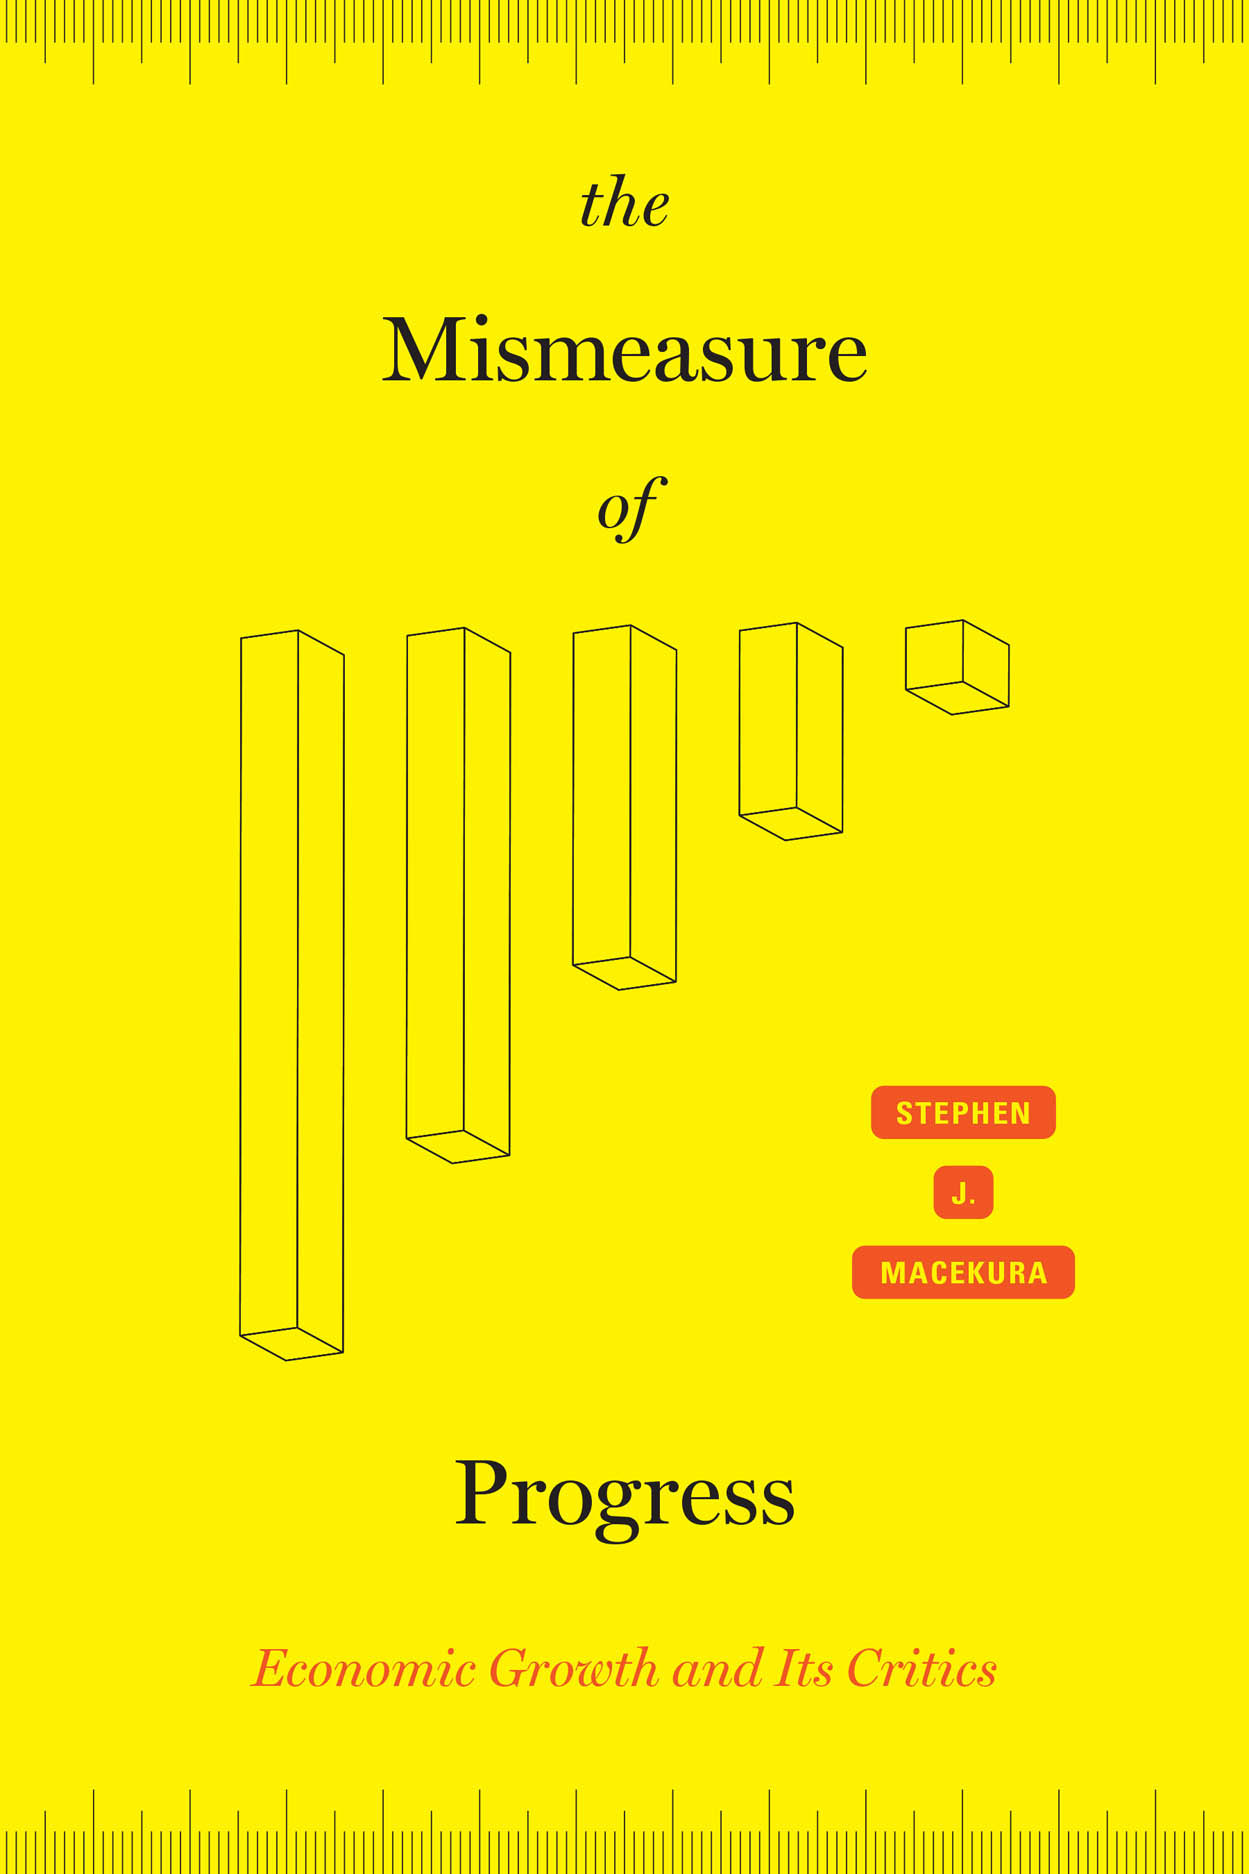 The Mismeasure of Progress